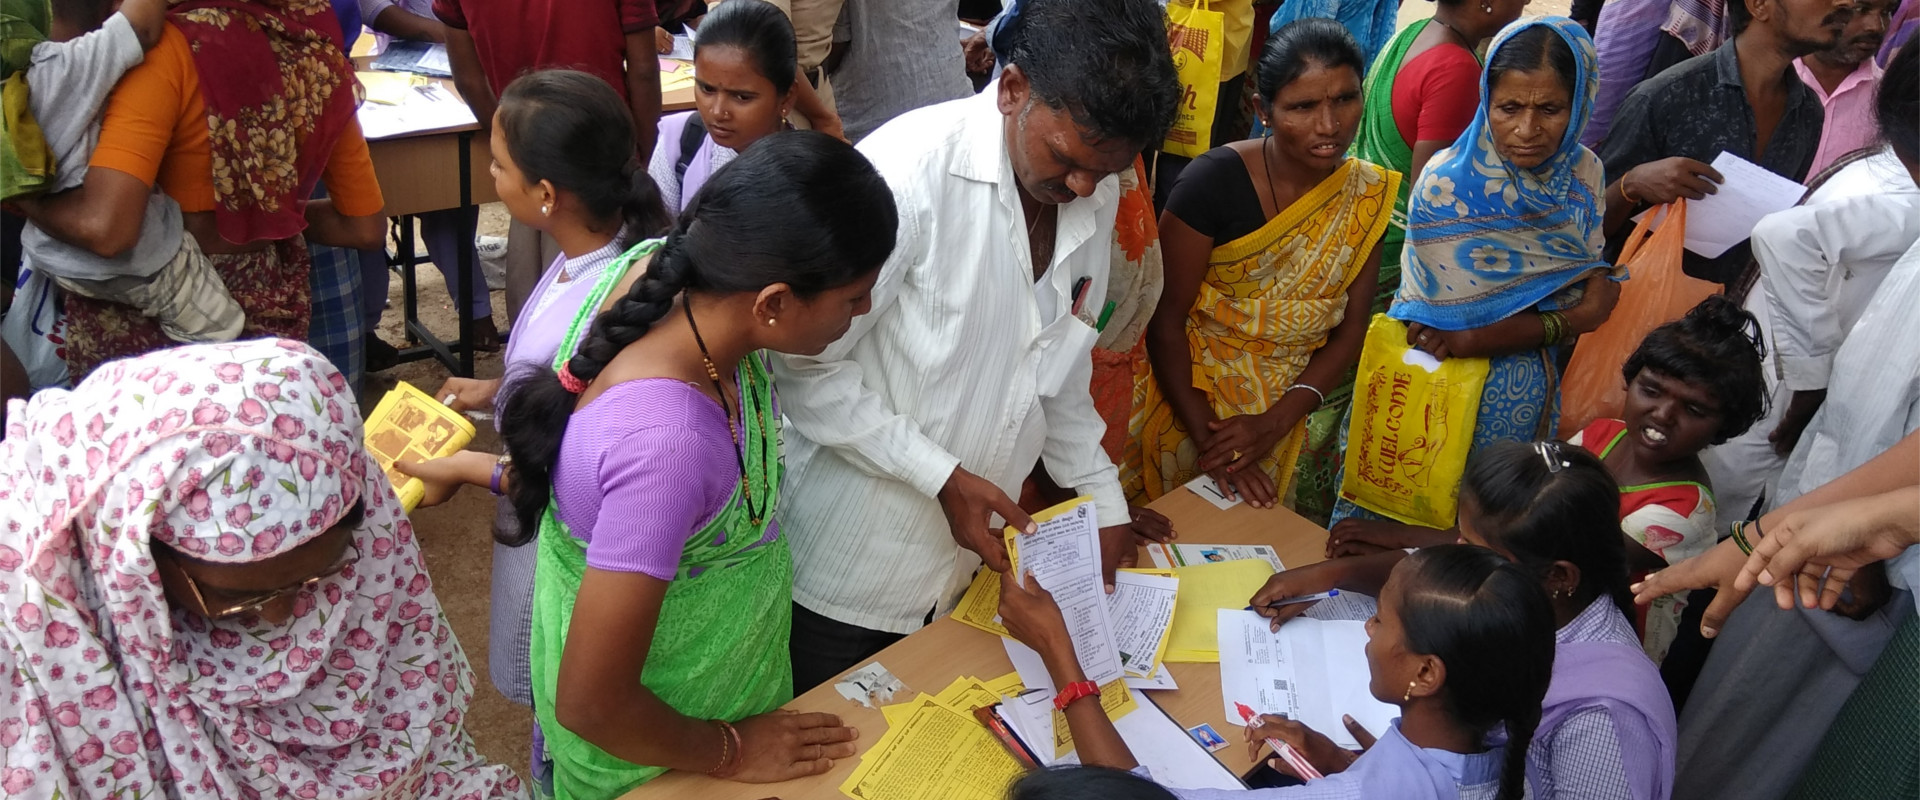 Survey and assessment camp in Koppal | APD India